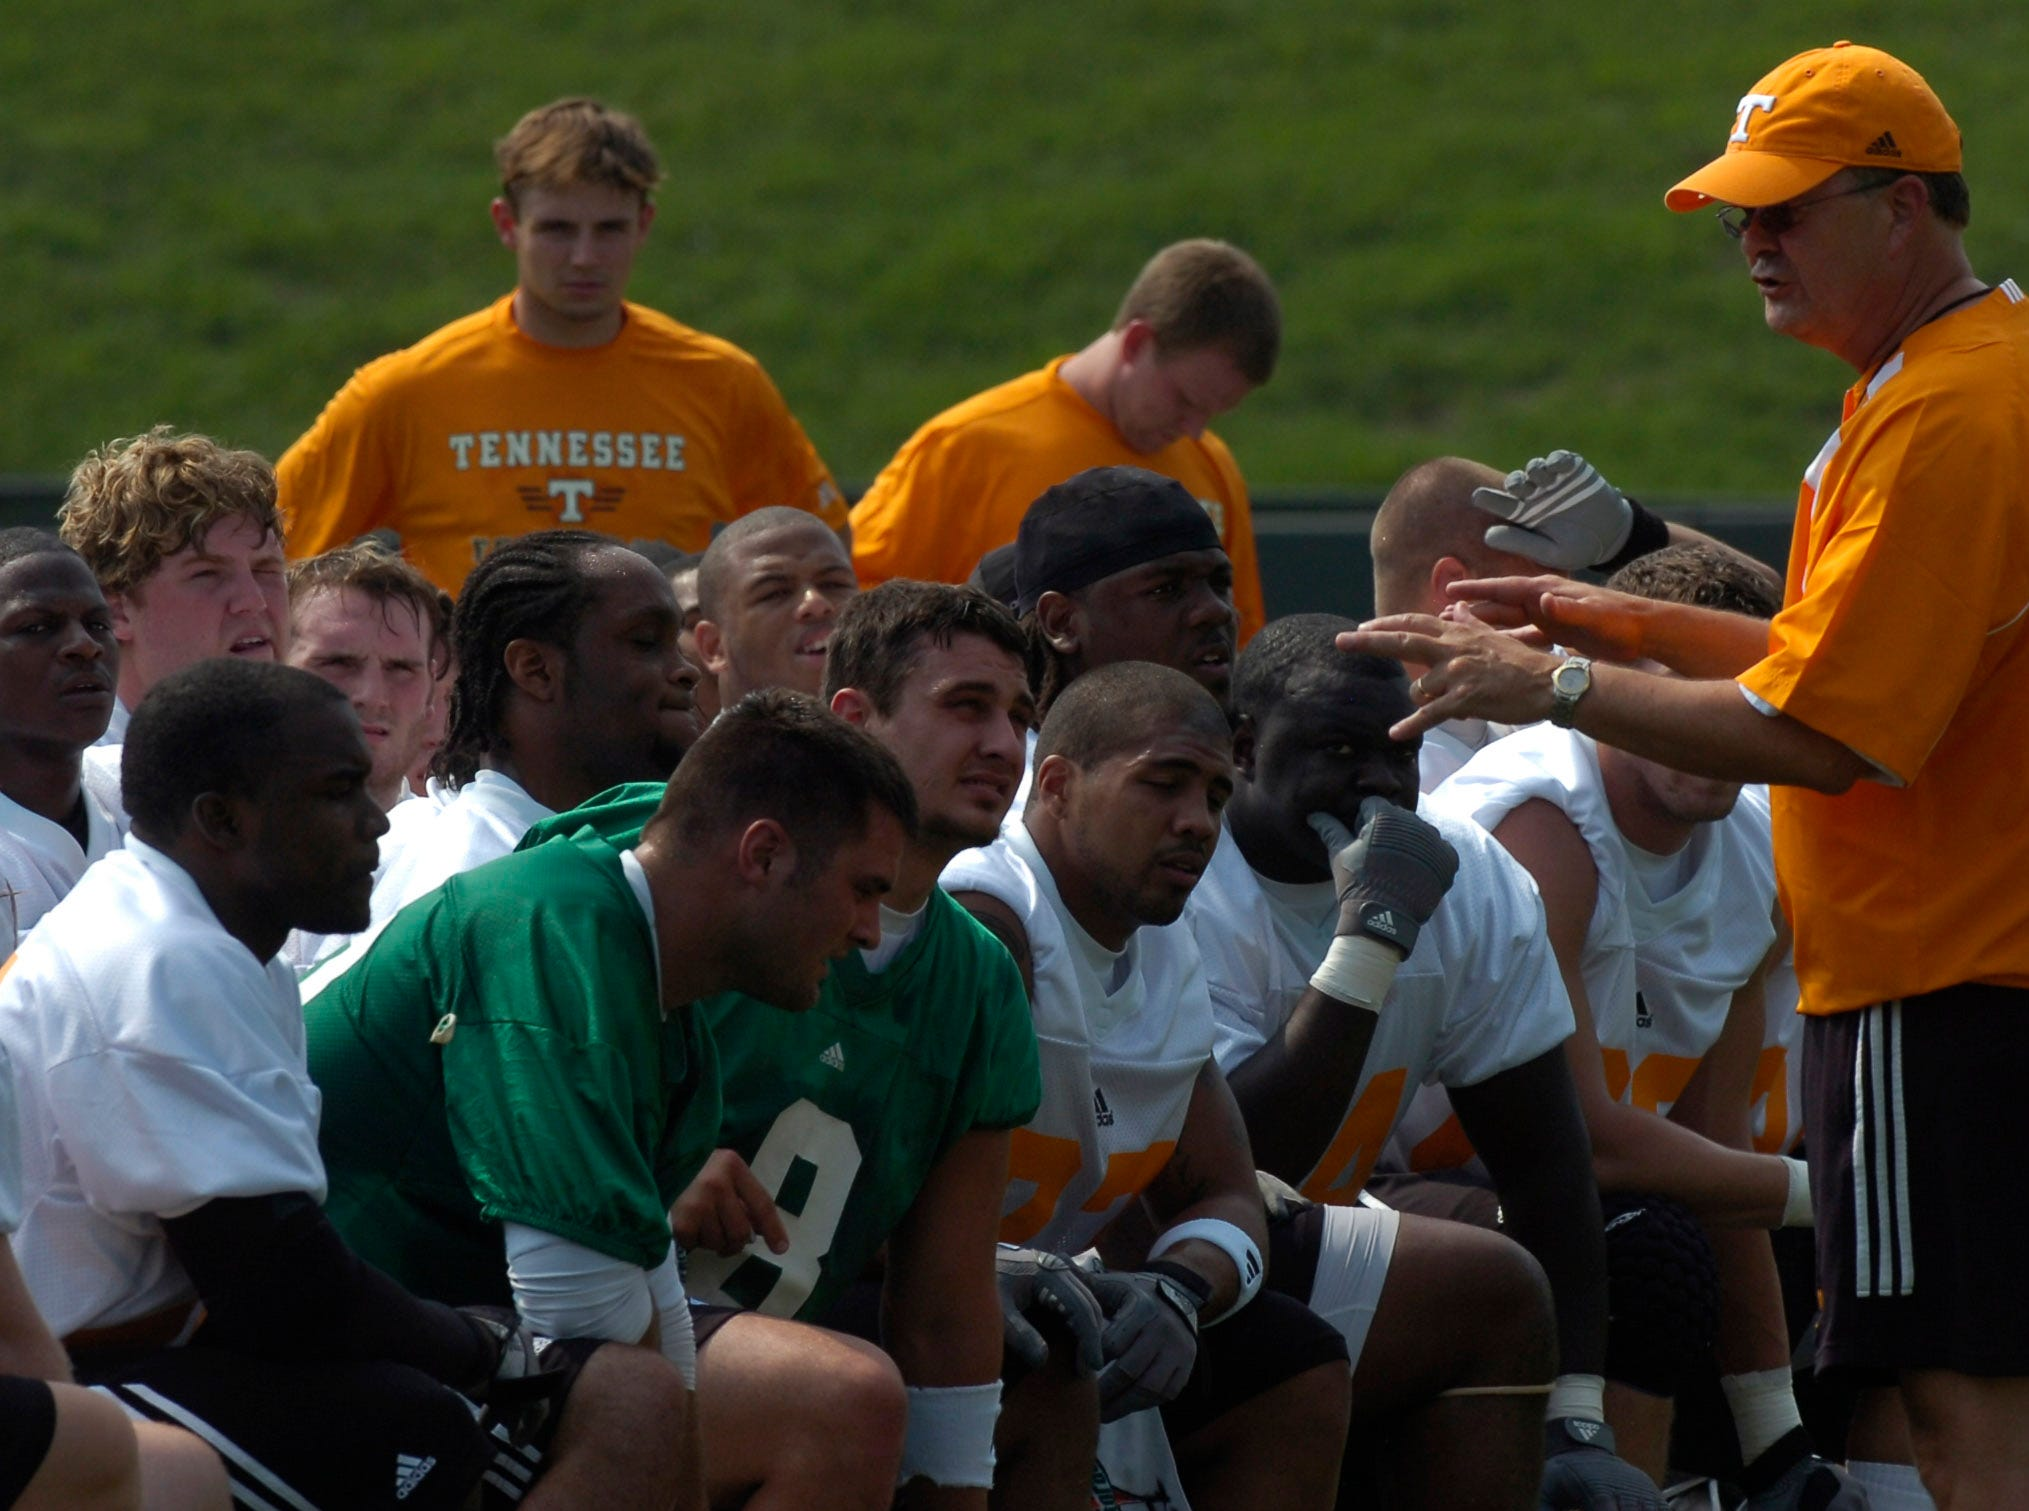 vols.ASB#8197.jpg--SPORTS-- UT coach David Cutcliffe talks to the offensive players during the first practice for the 2007 football team on Friday at Lindsey Nelson Stadium.Photo by Amy Smotherman-Burgess, Knoxville News Sentinel staff